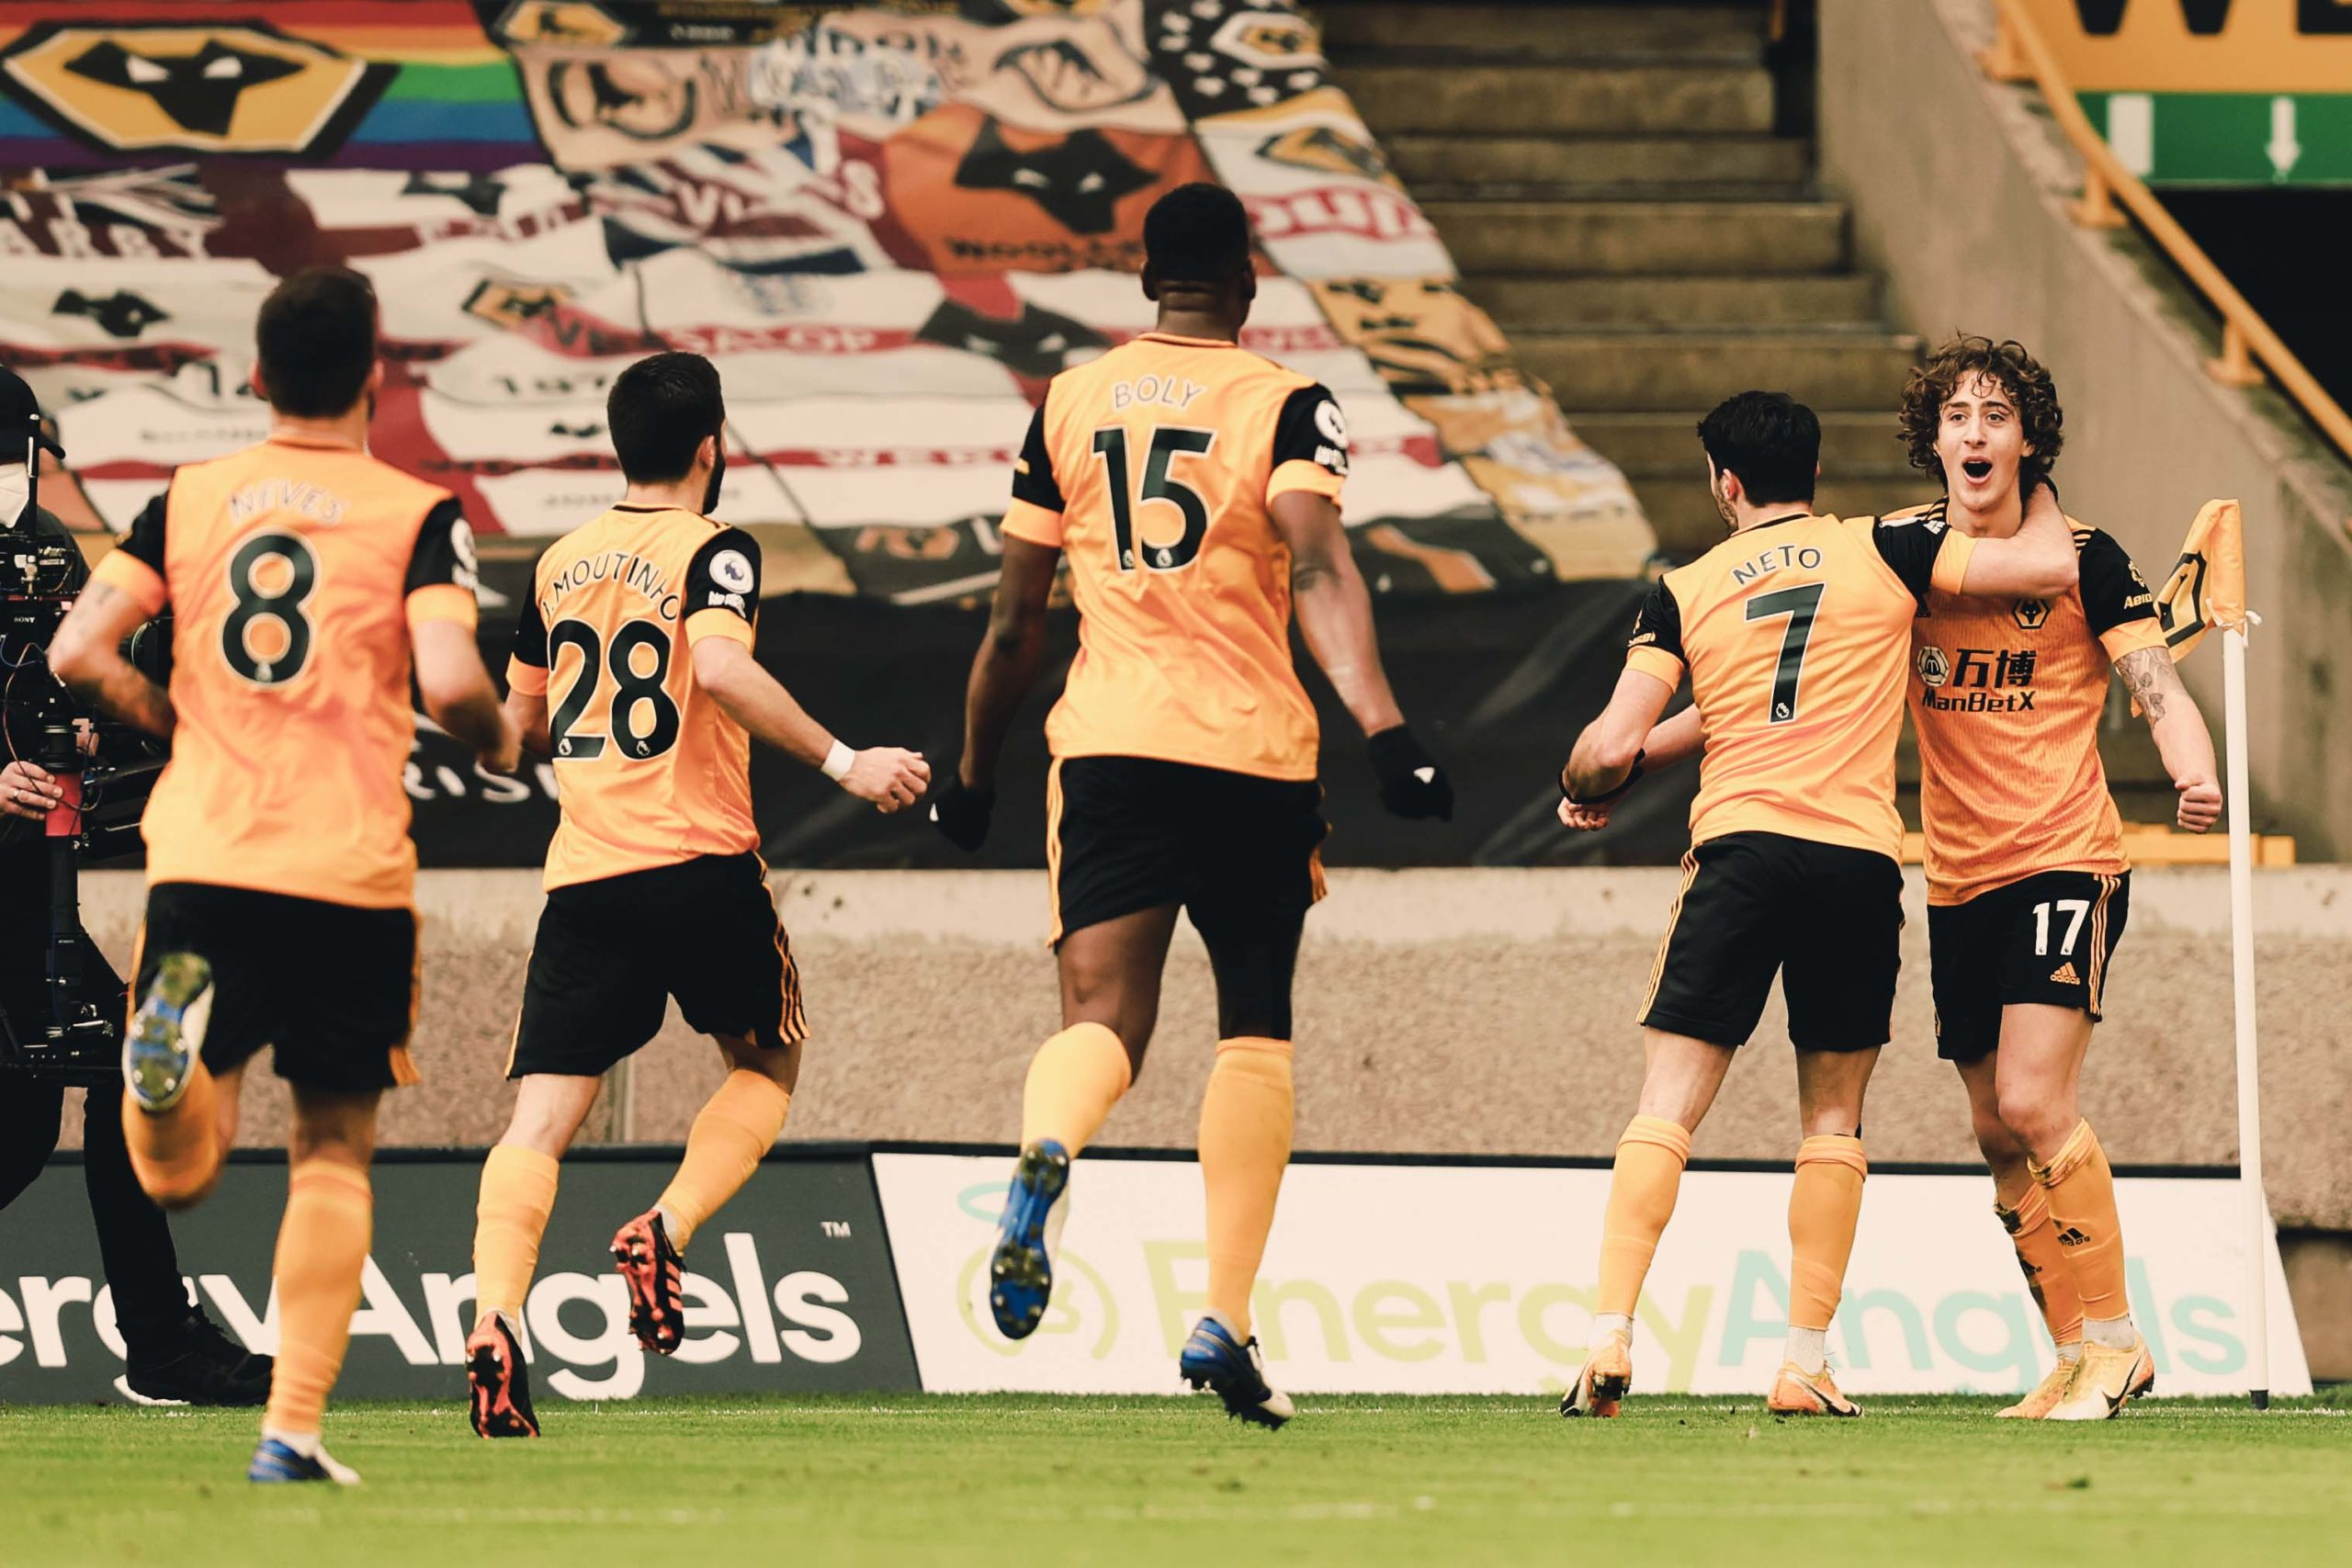 Wolves [PHOTO CREDIT: @Wolves]